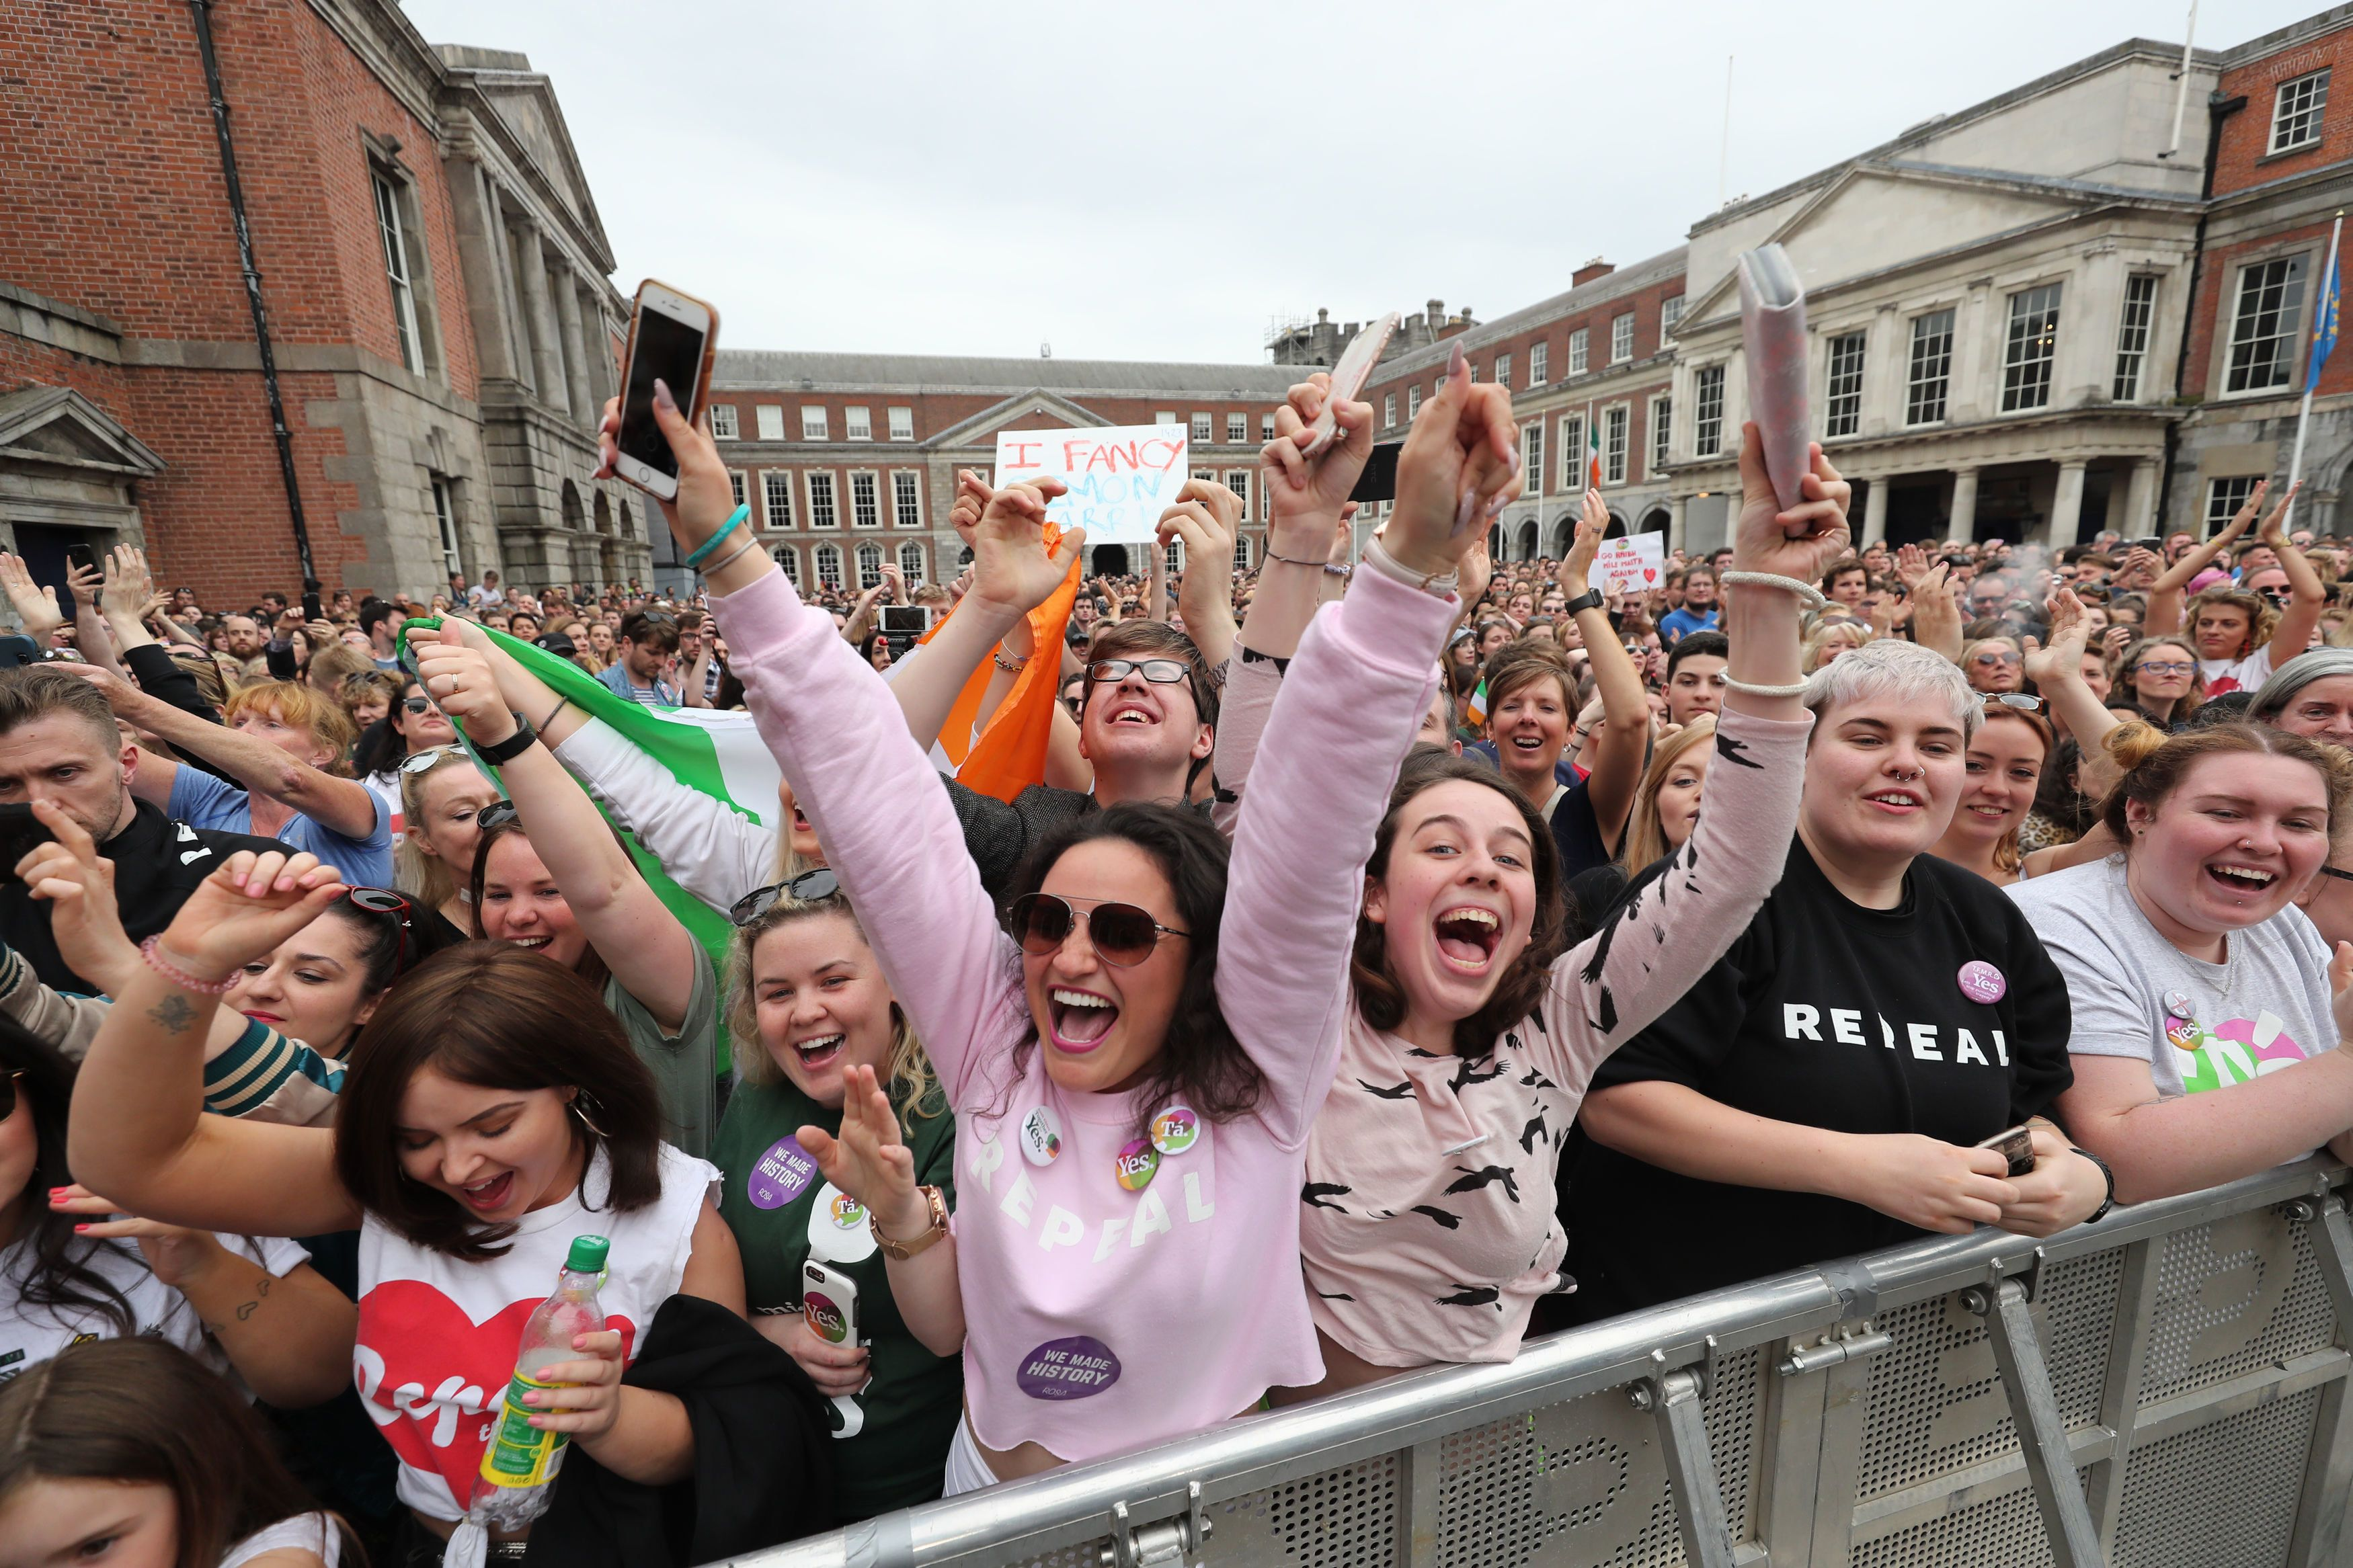 Pro-life Canadian in Ireland reflects on Friday's nail-biter abortion referendum